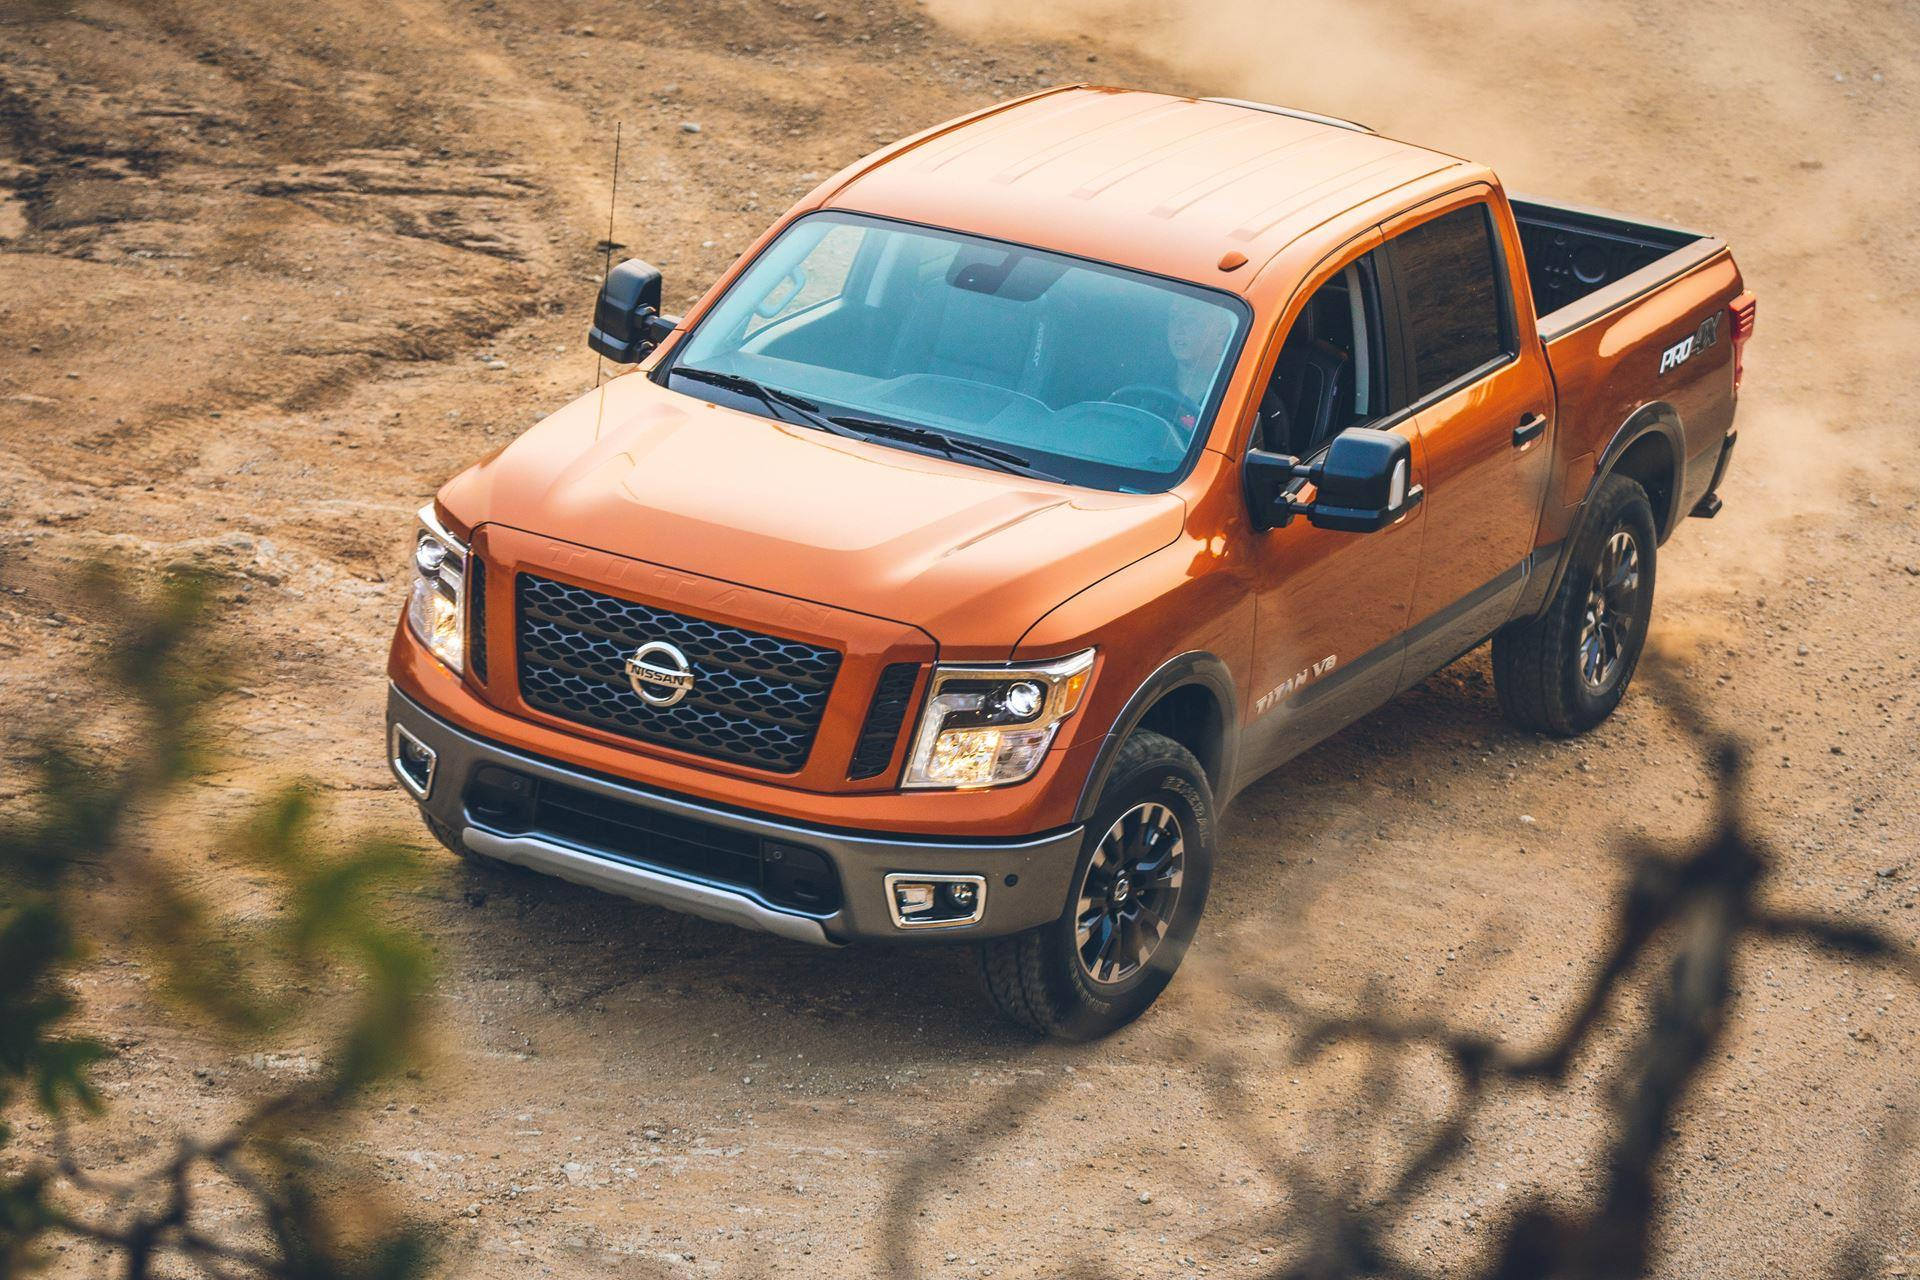 nissan titan images, 2019 nissan titan wallpapers hd